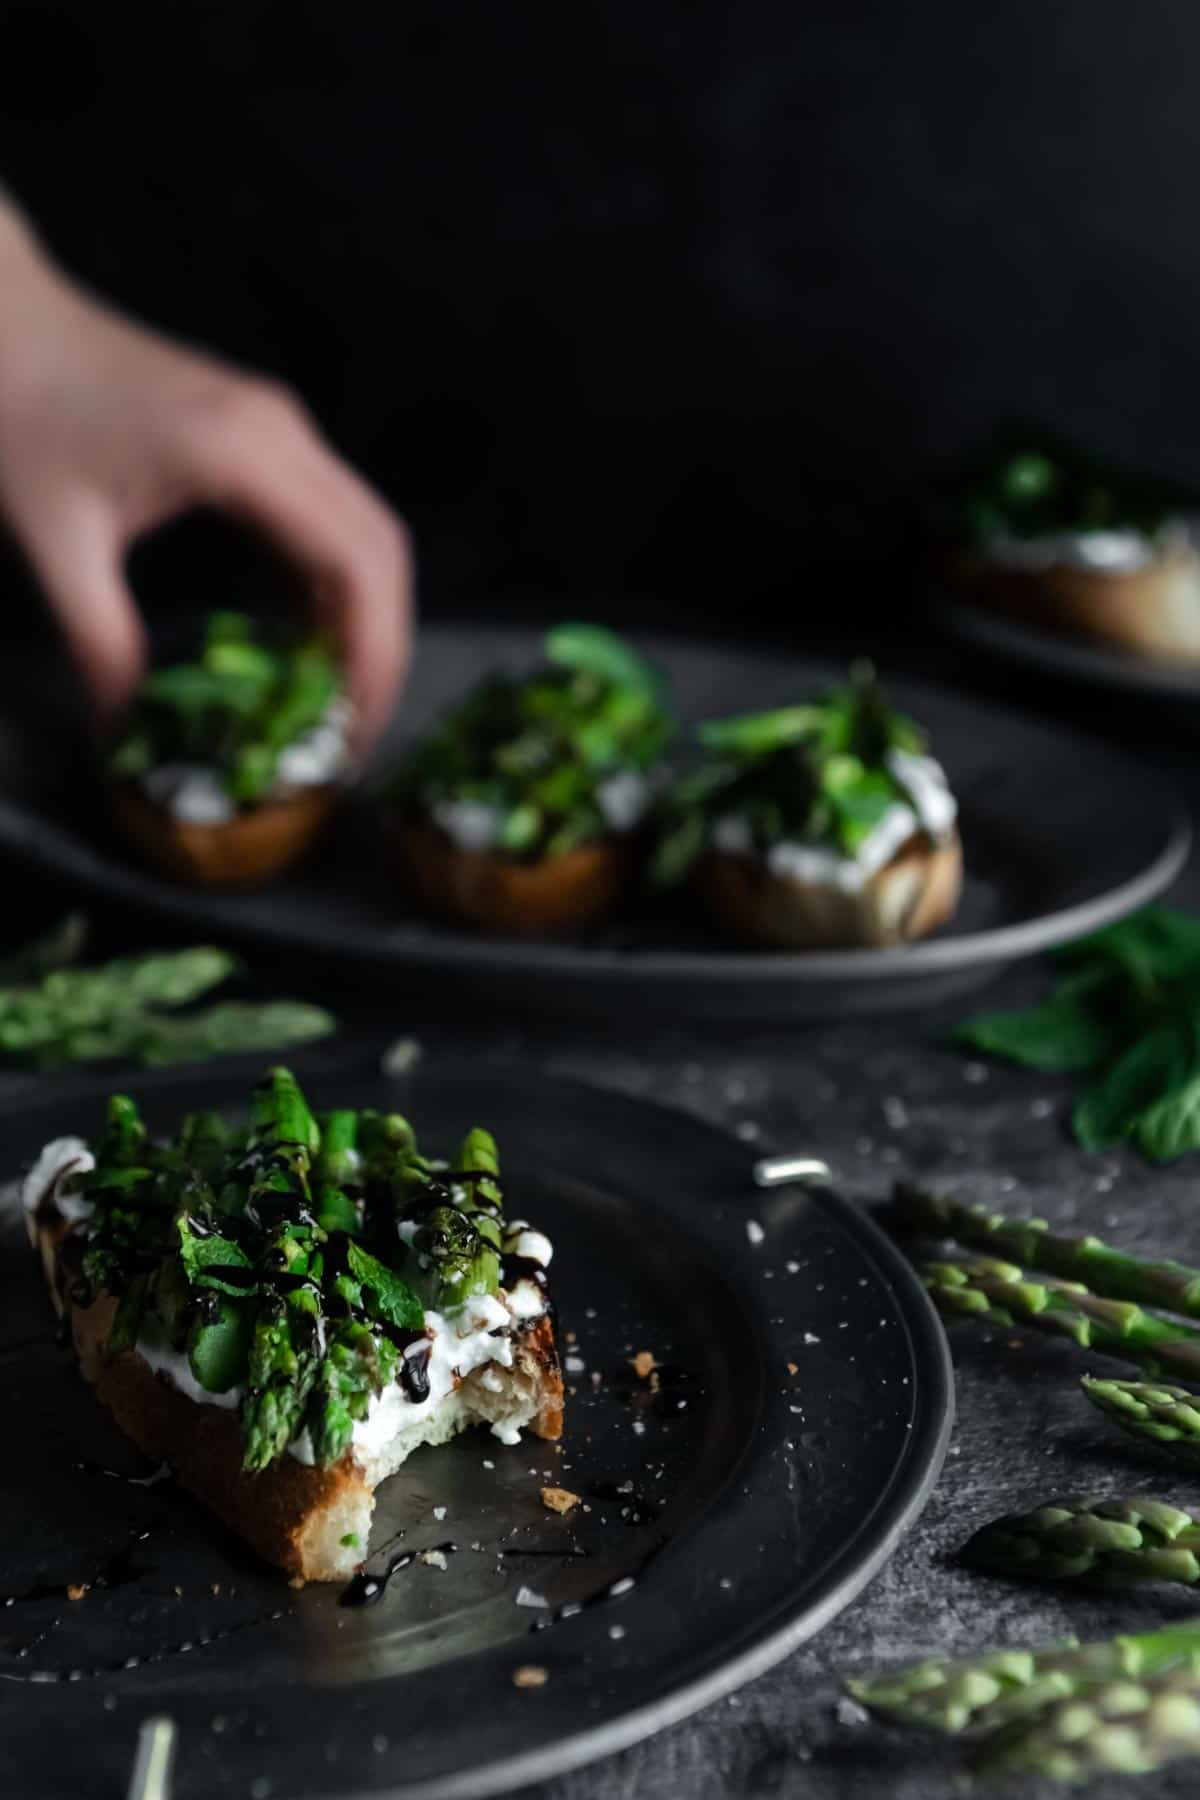 A bite shot revealing creamy Whipped Ricotta layered with grilled asparagus and balsamic glaze